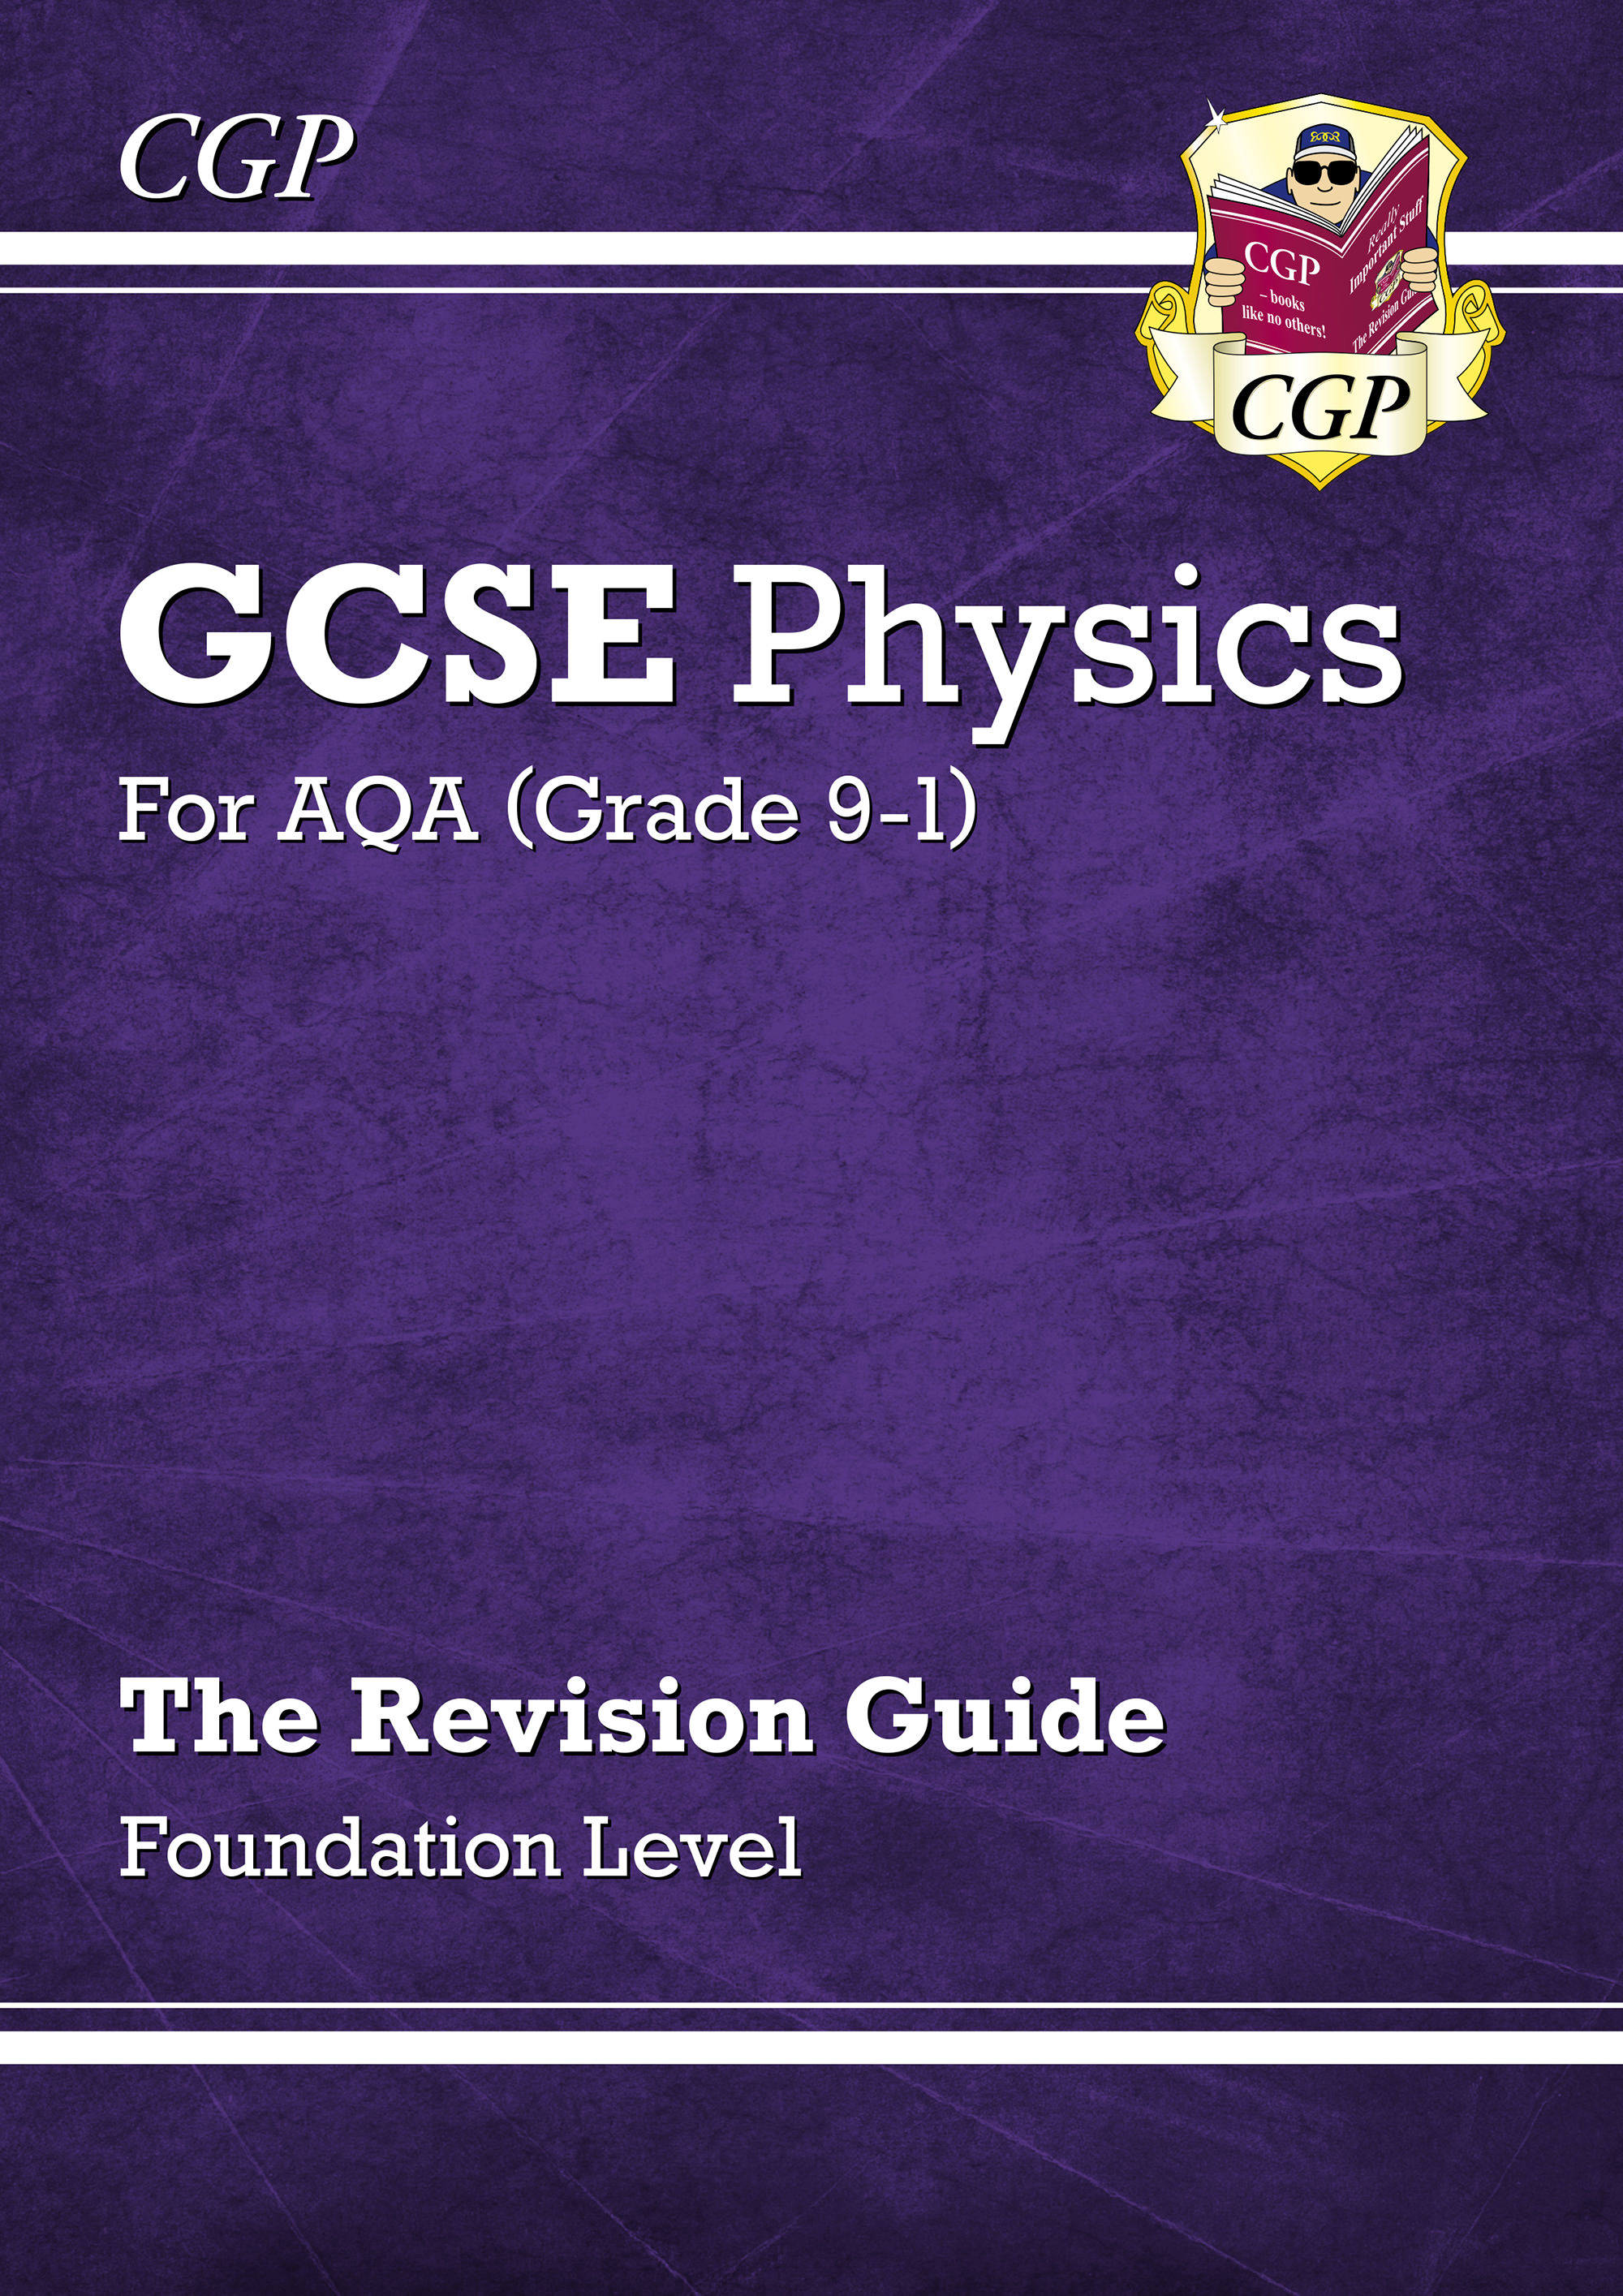 PAFR41DK - New Grade 9-1 GCSE Physics: AQA Revision Guide - Foundation